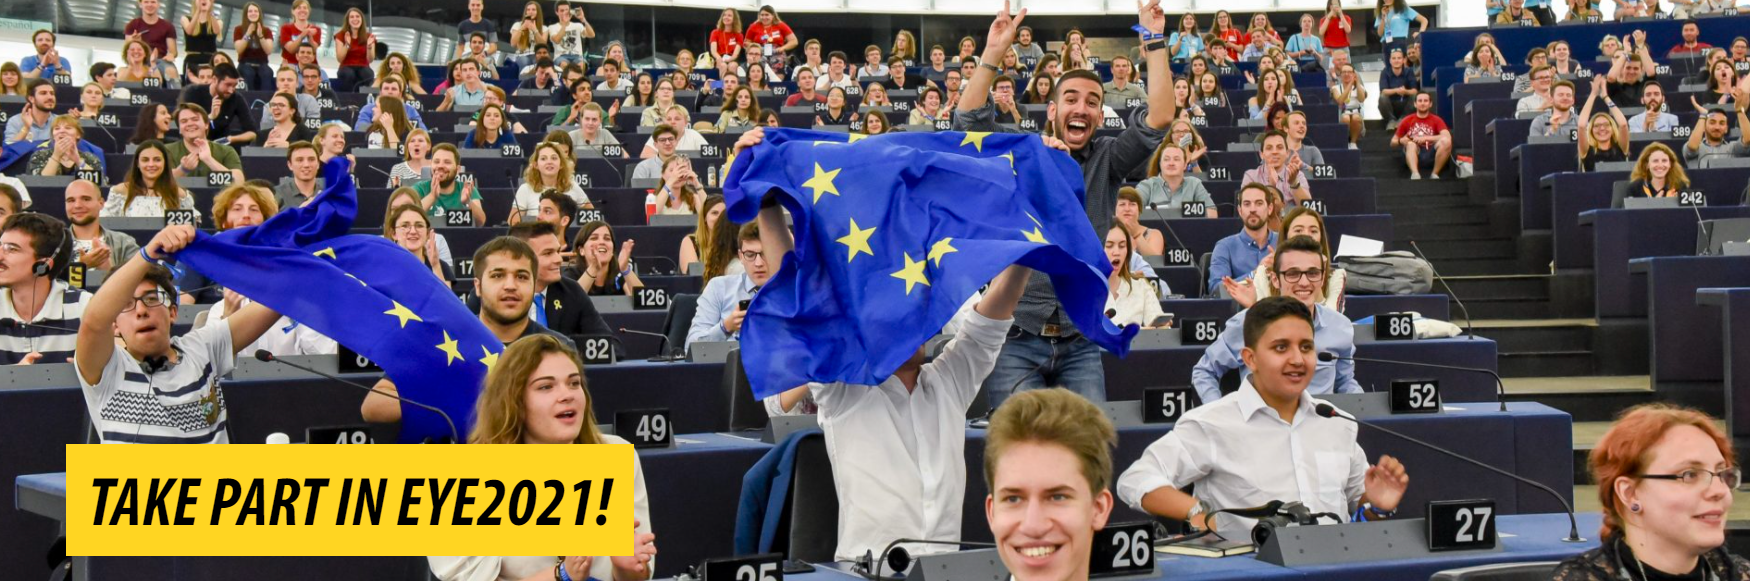 European Youth Event 2021: the future is ours!